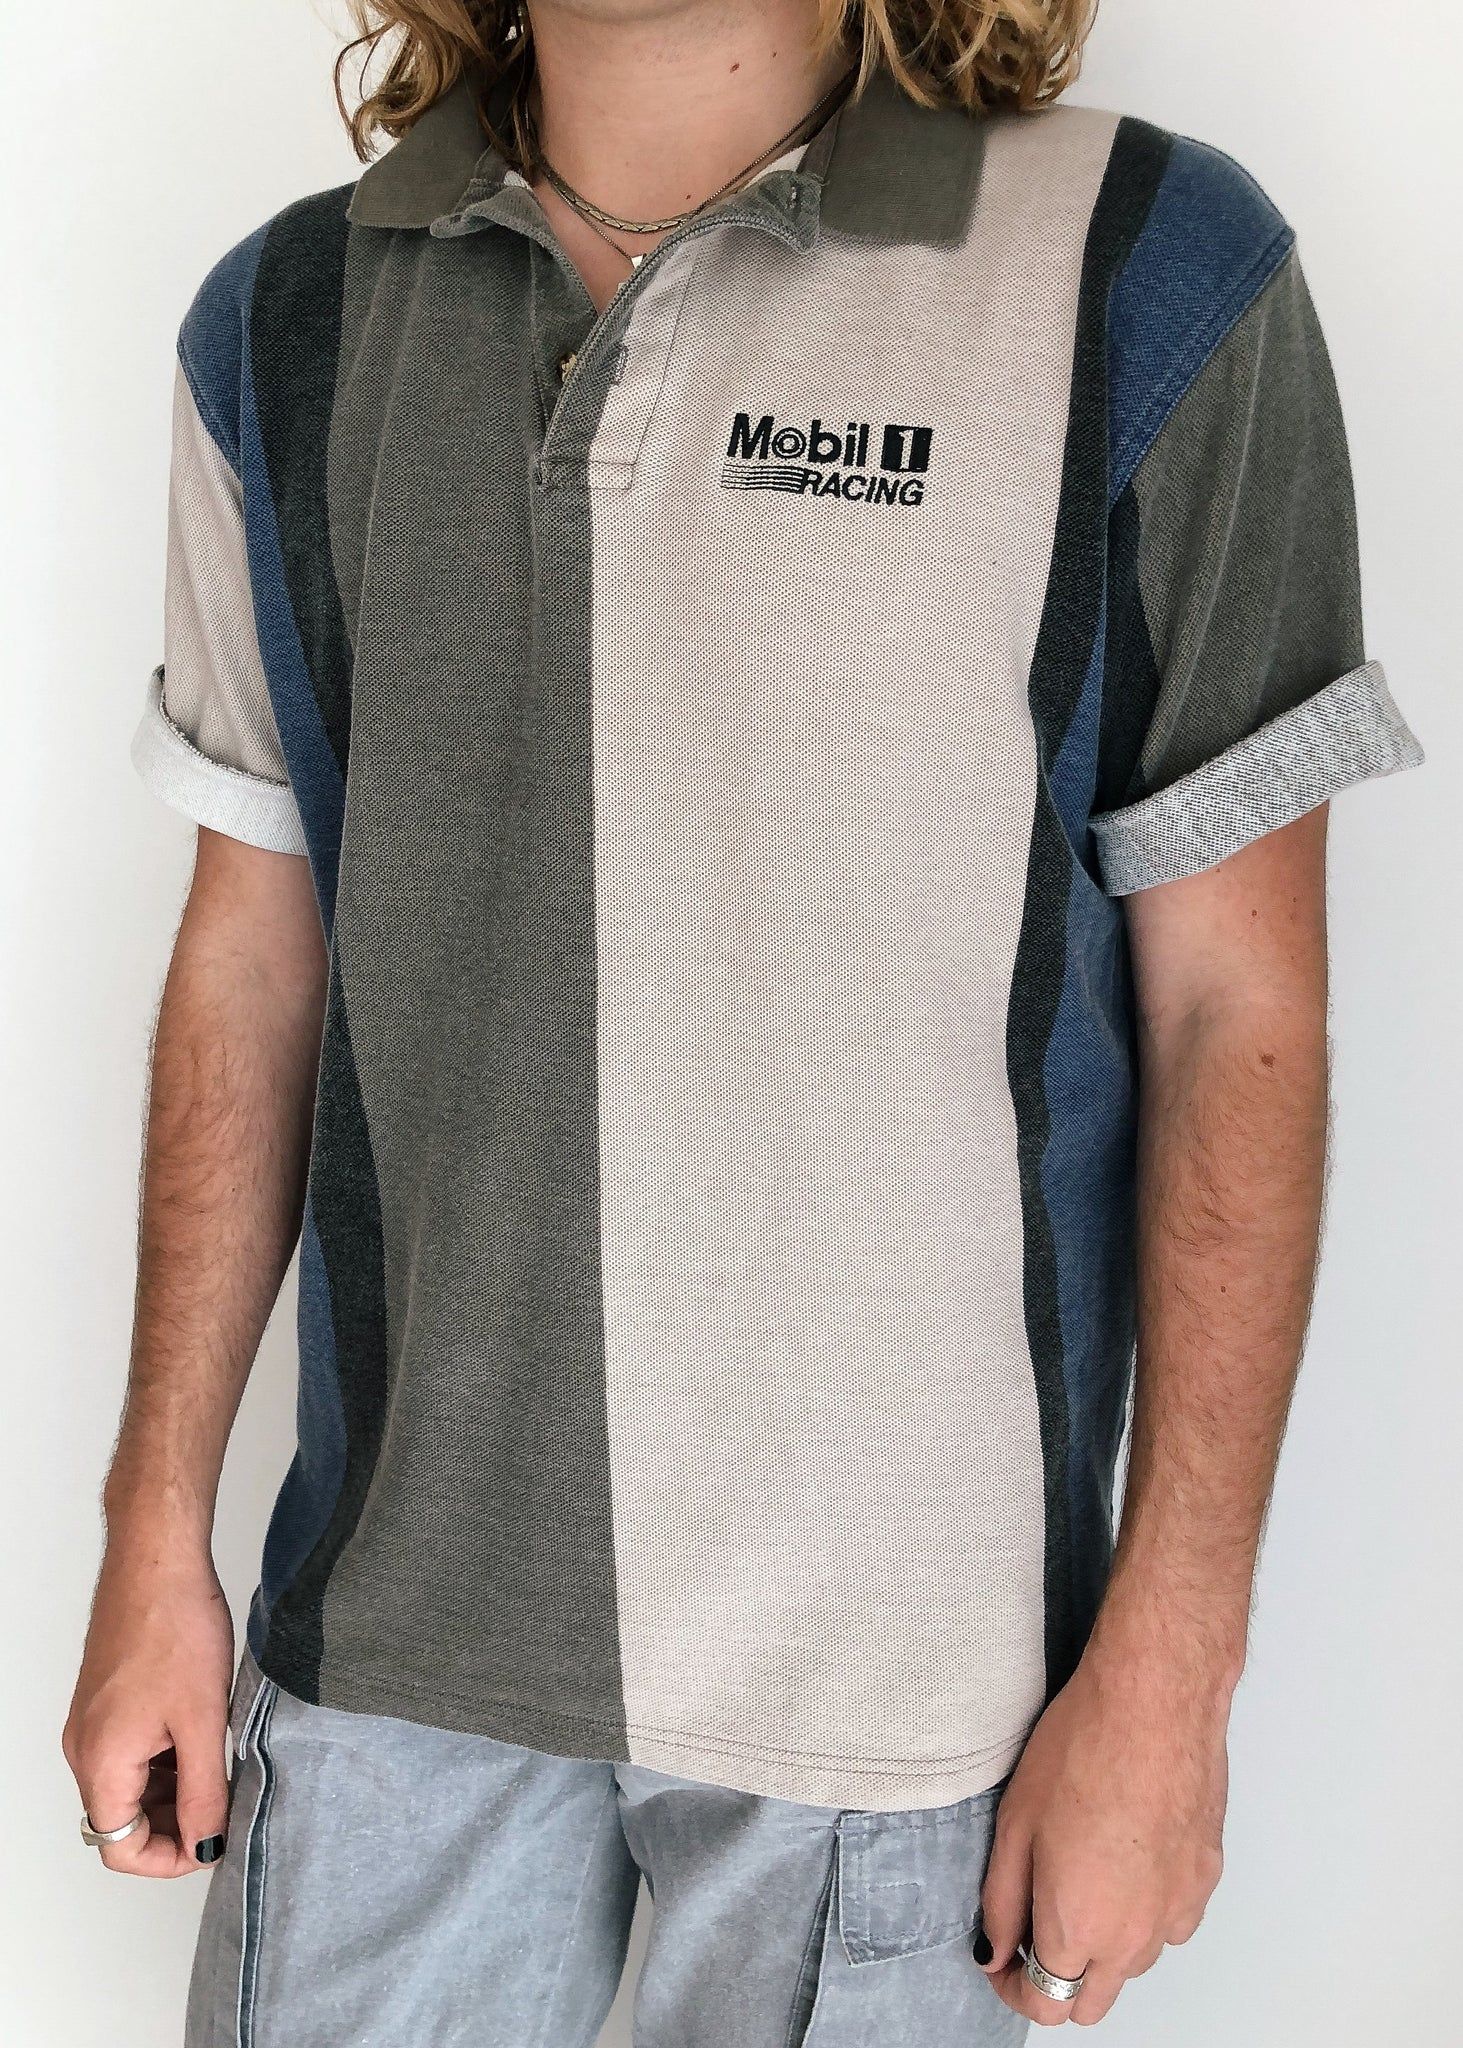 Mobil 1 Faded Polo